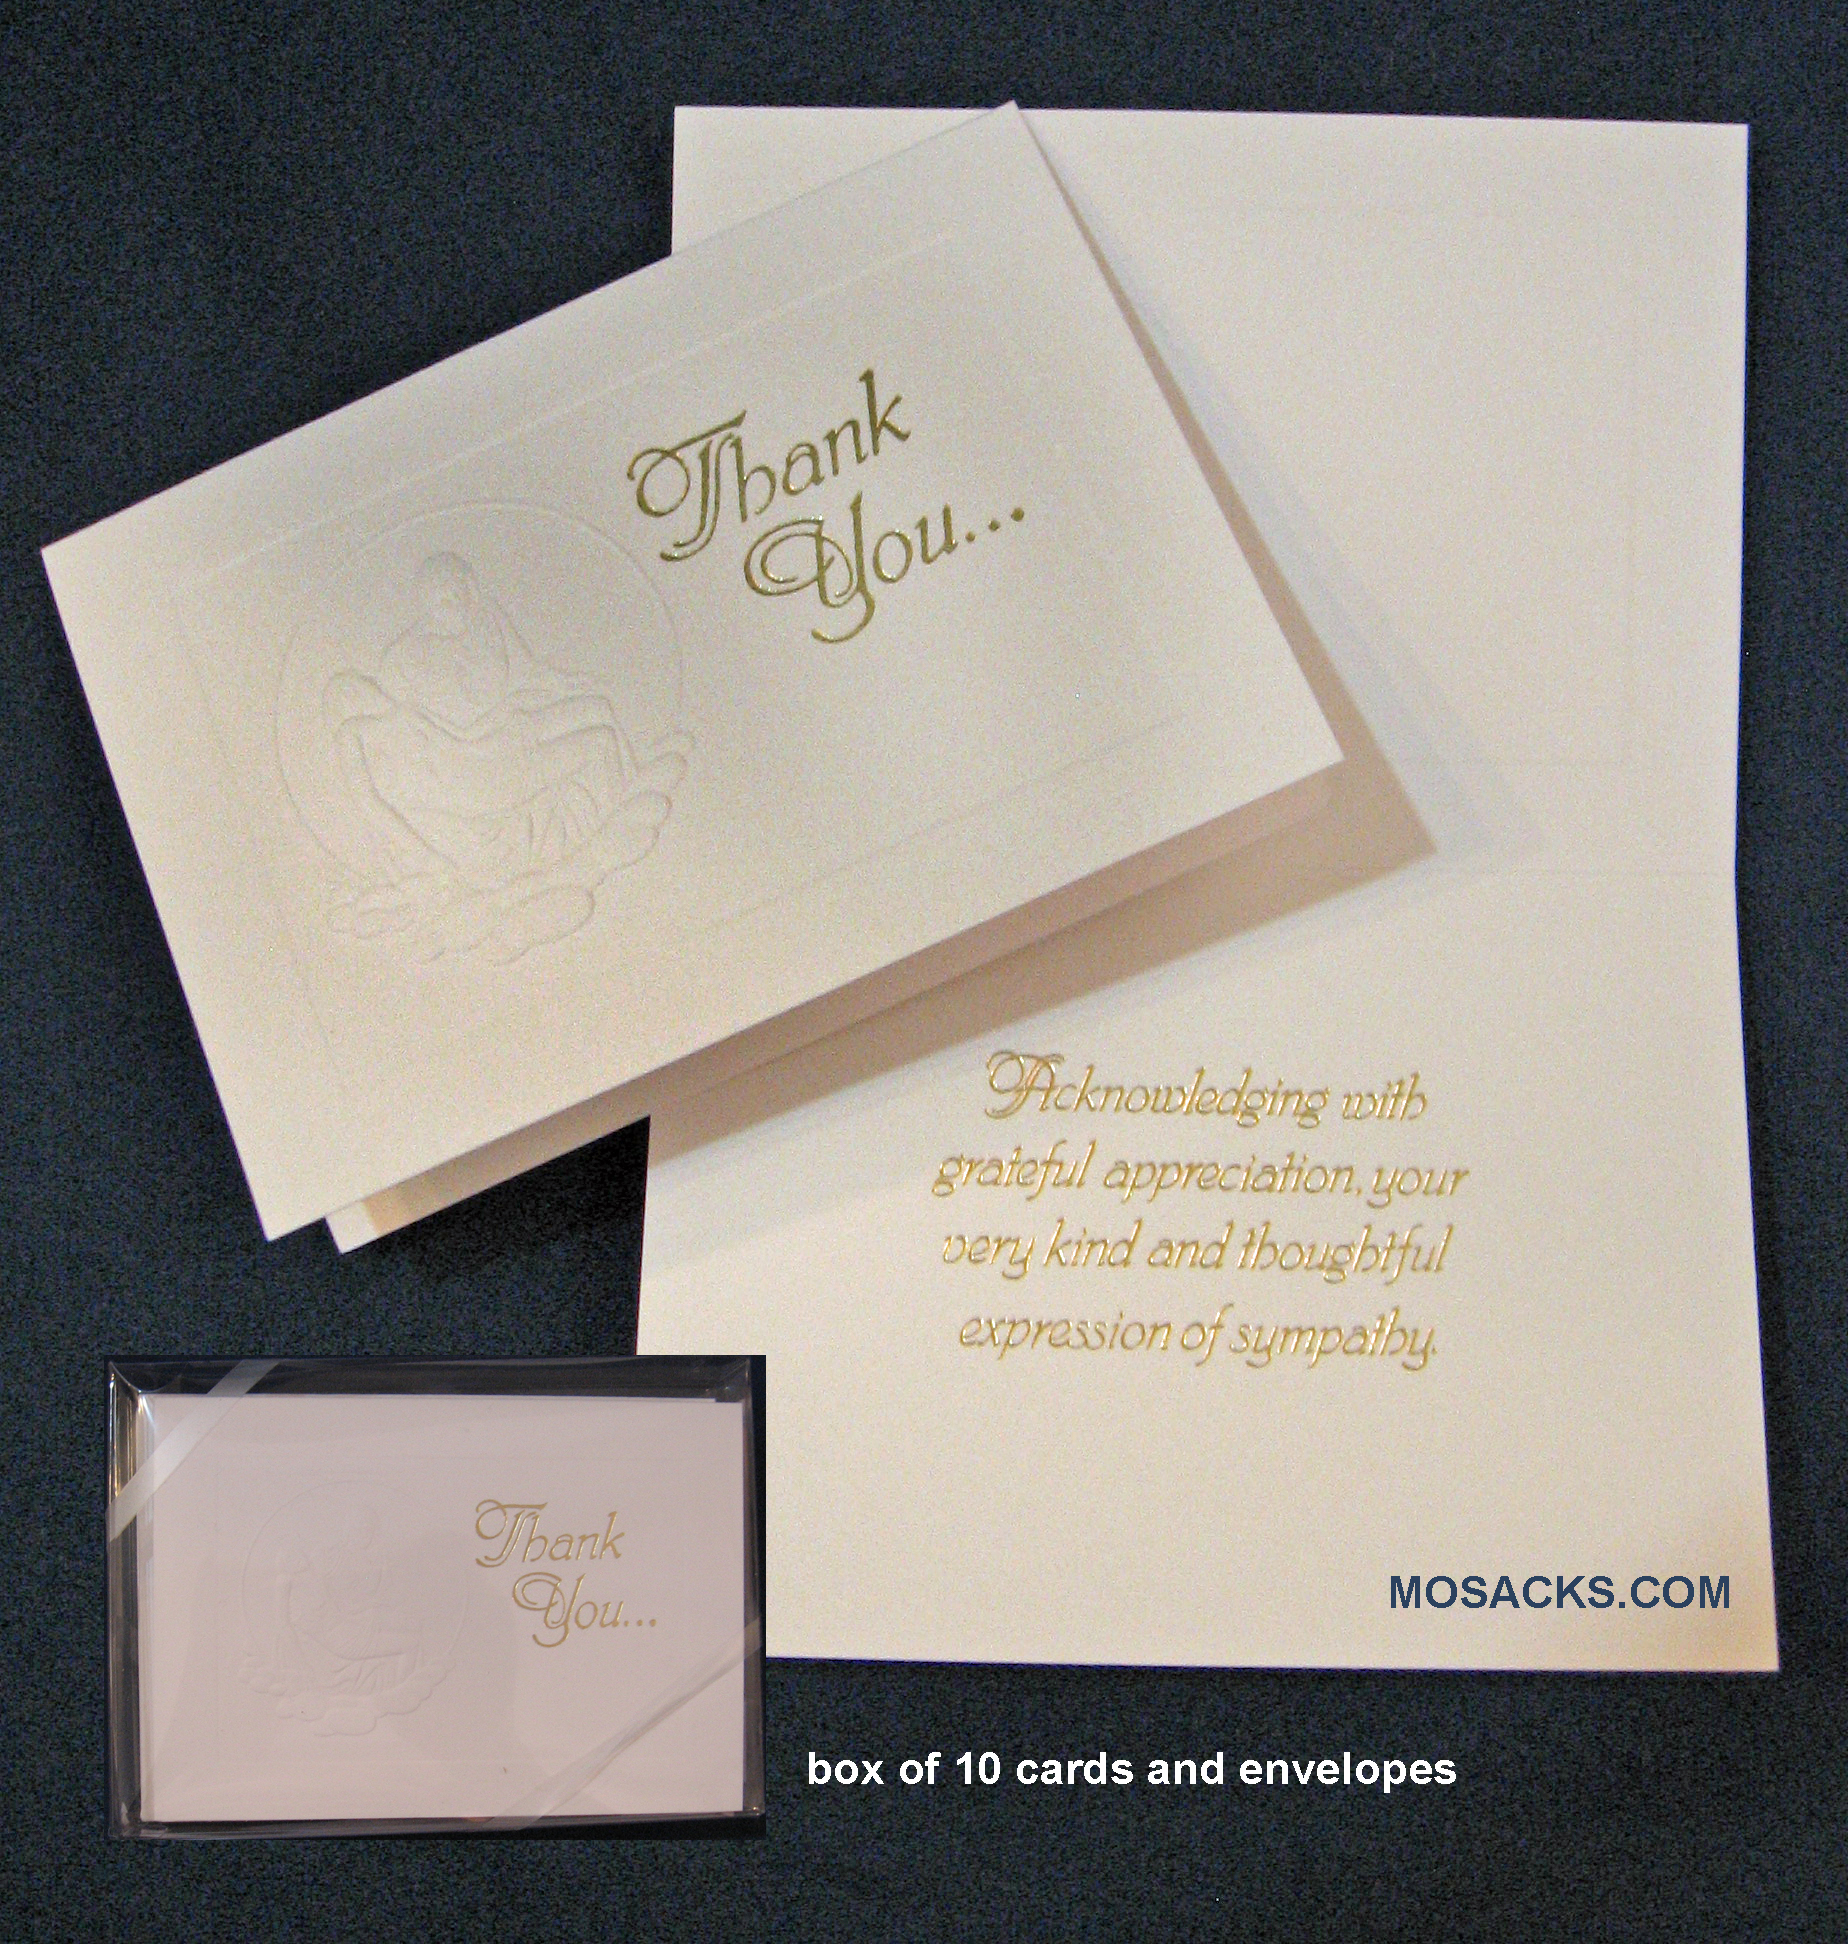 Pieta Thank You Sympathy Boxed Notes-289